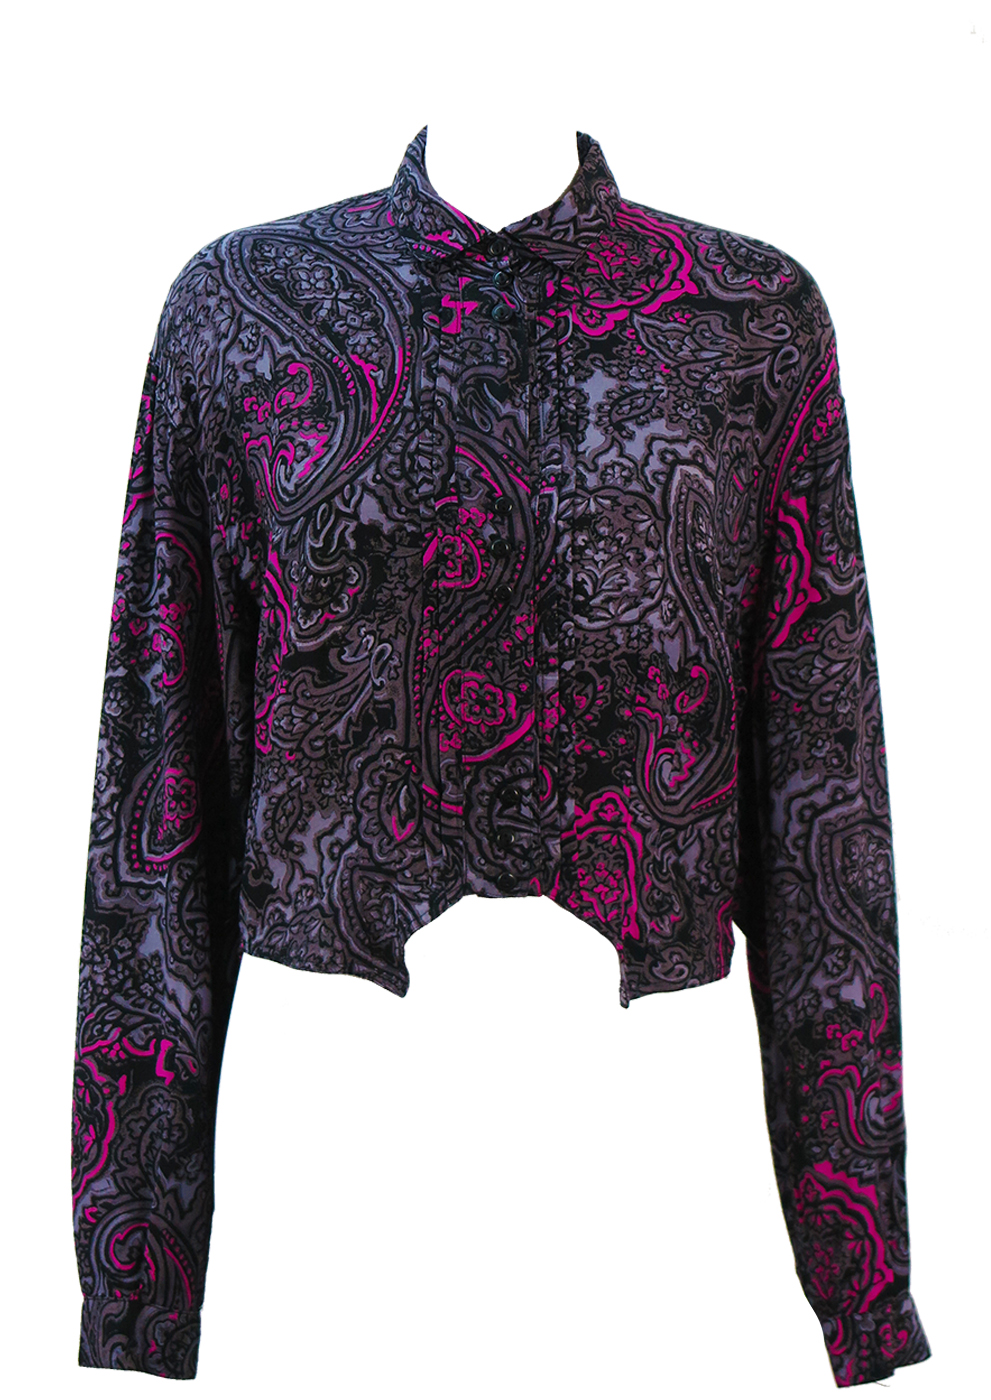 473a7b199e3737 Vintage 80's Blouse with Grey, Pink & Black Abstract Pattern – M ...